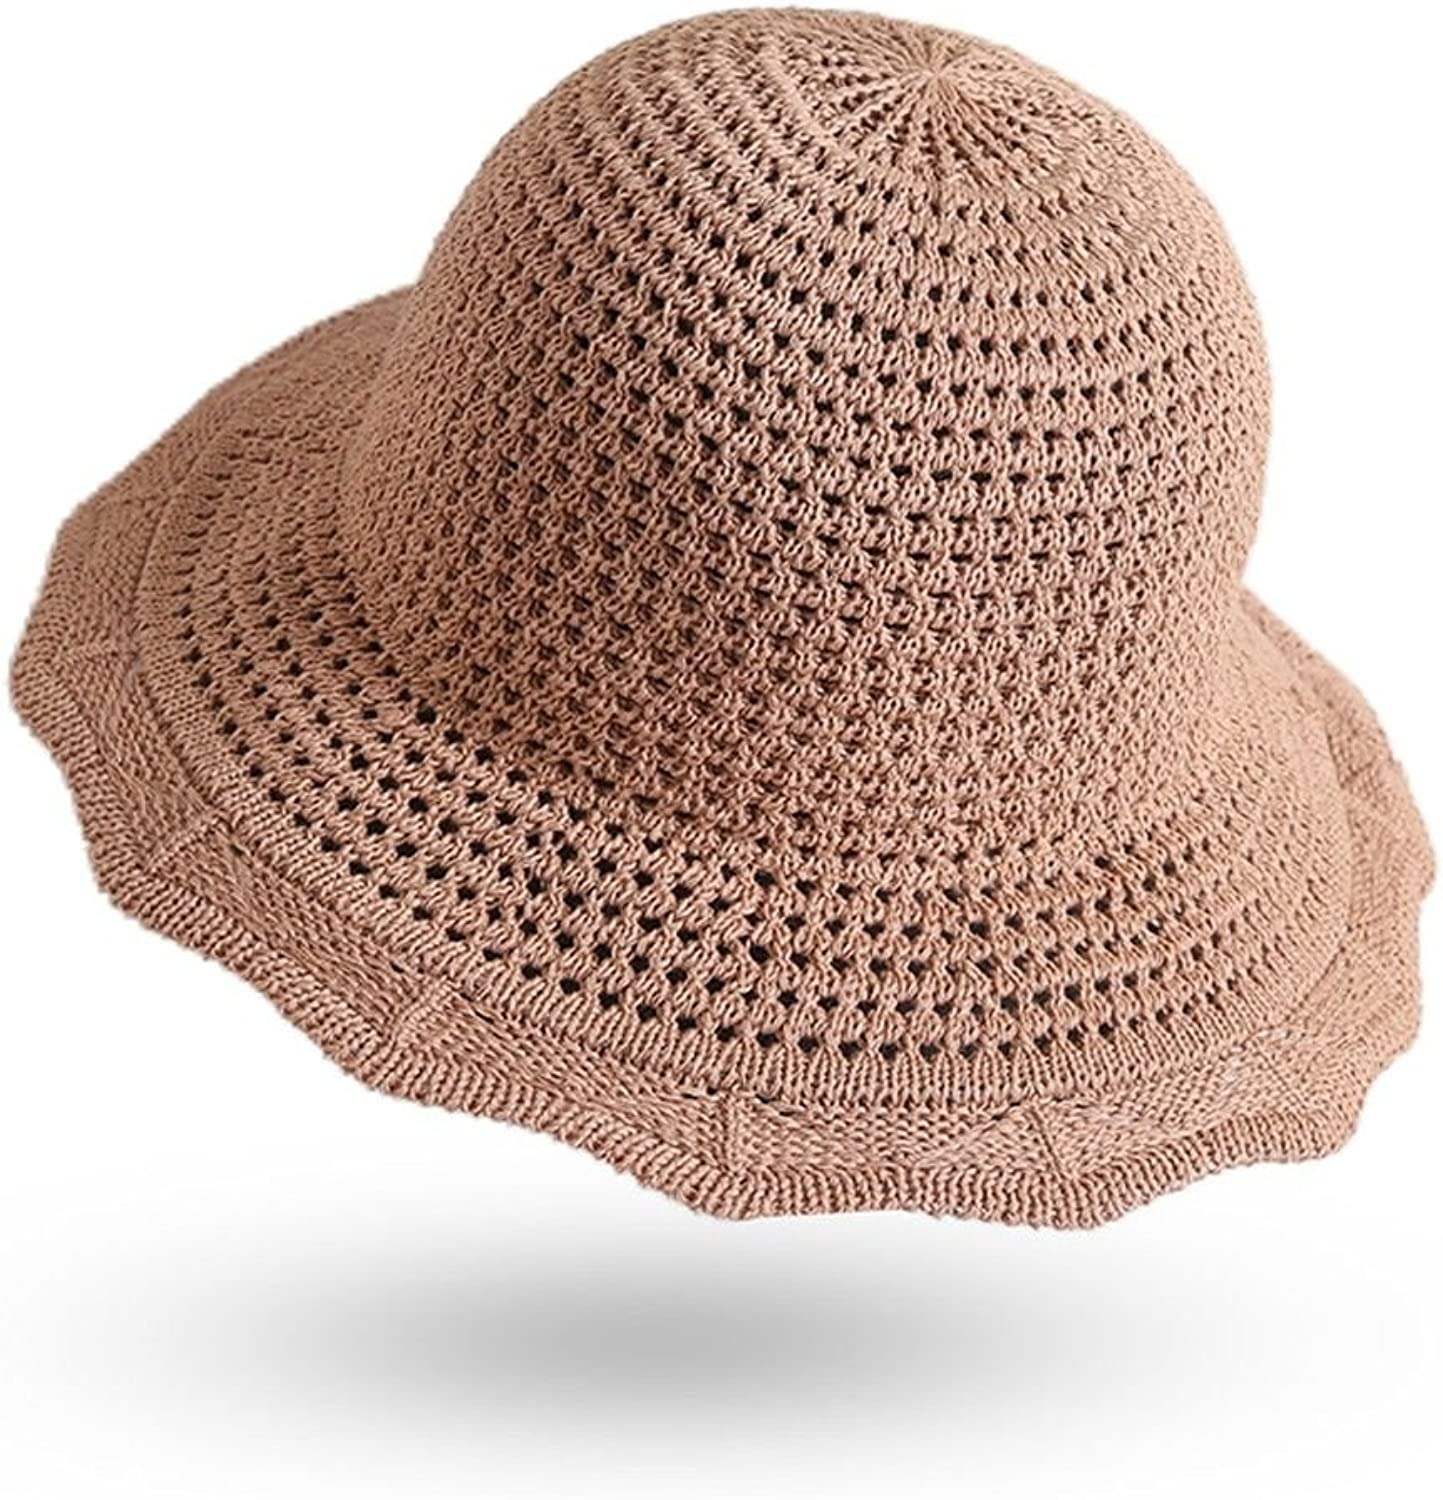 LIGYM Summer Sun Fishing Hat, Lace Shaped Knitted Foldable Straw Hat